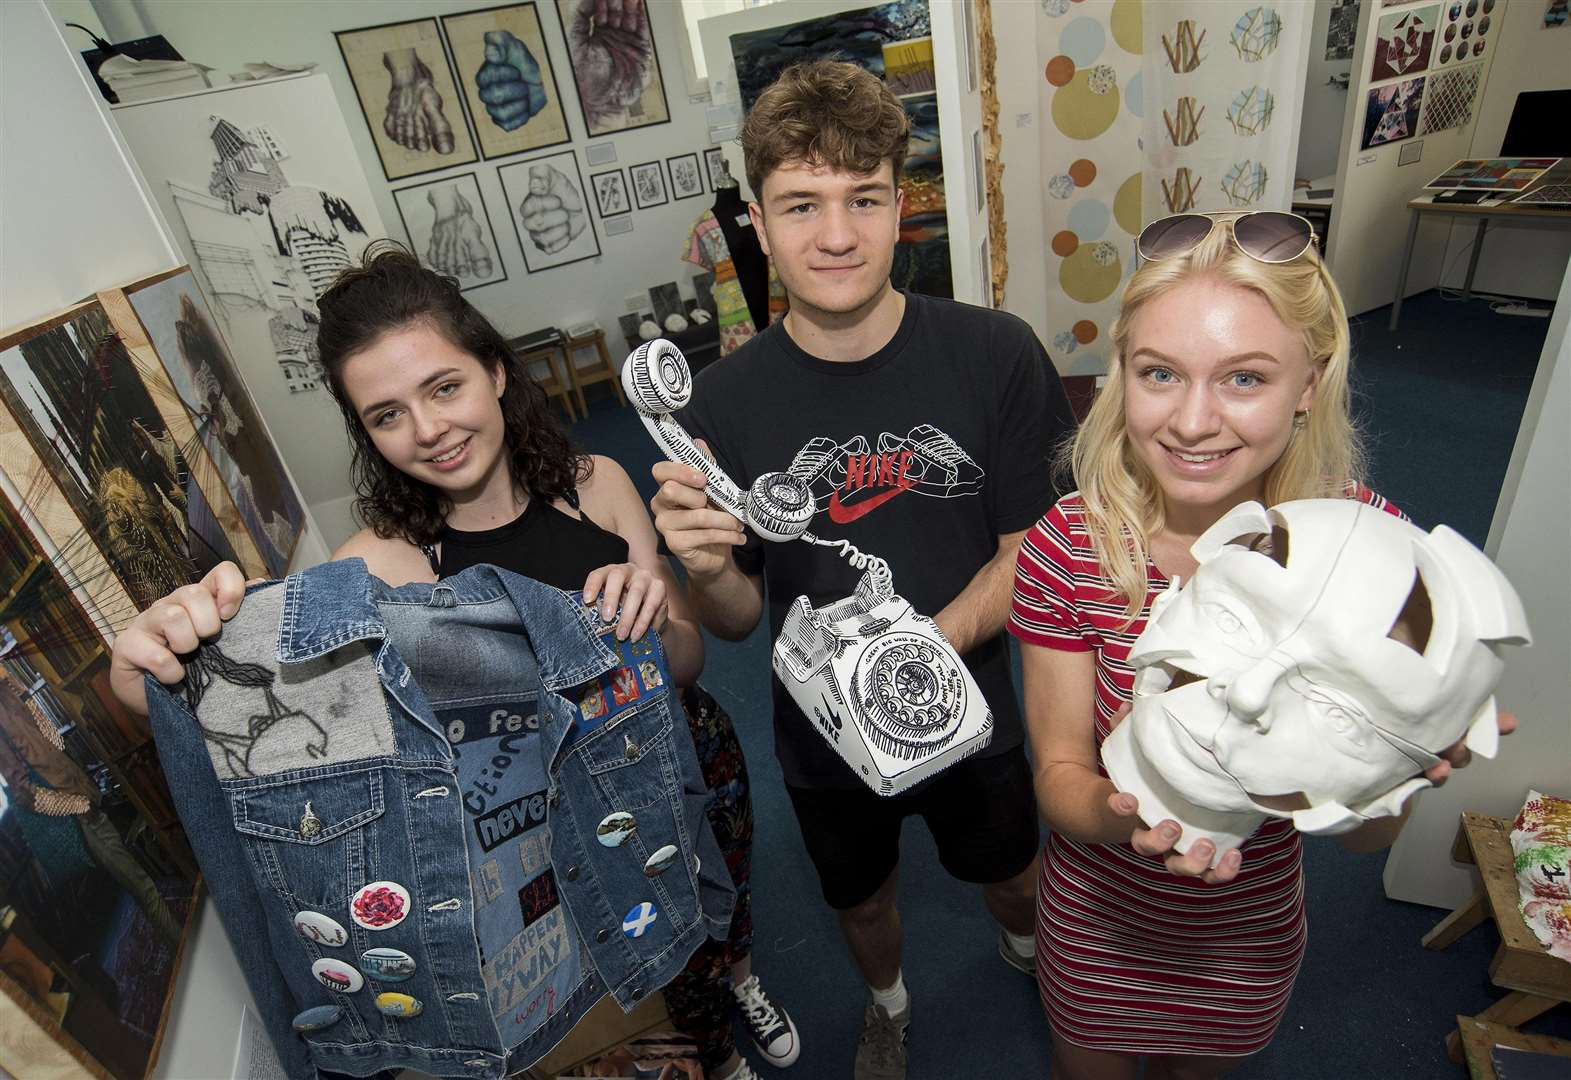 Thurston College to hold art exhibition